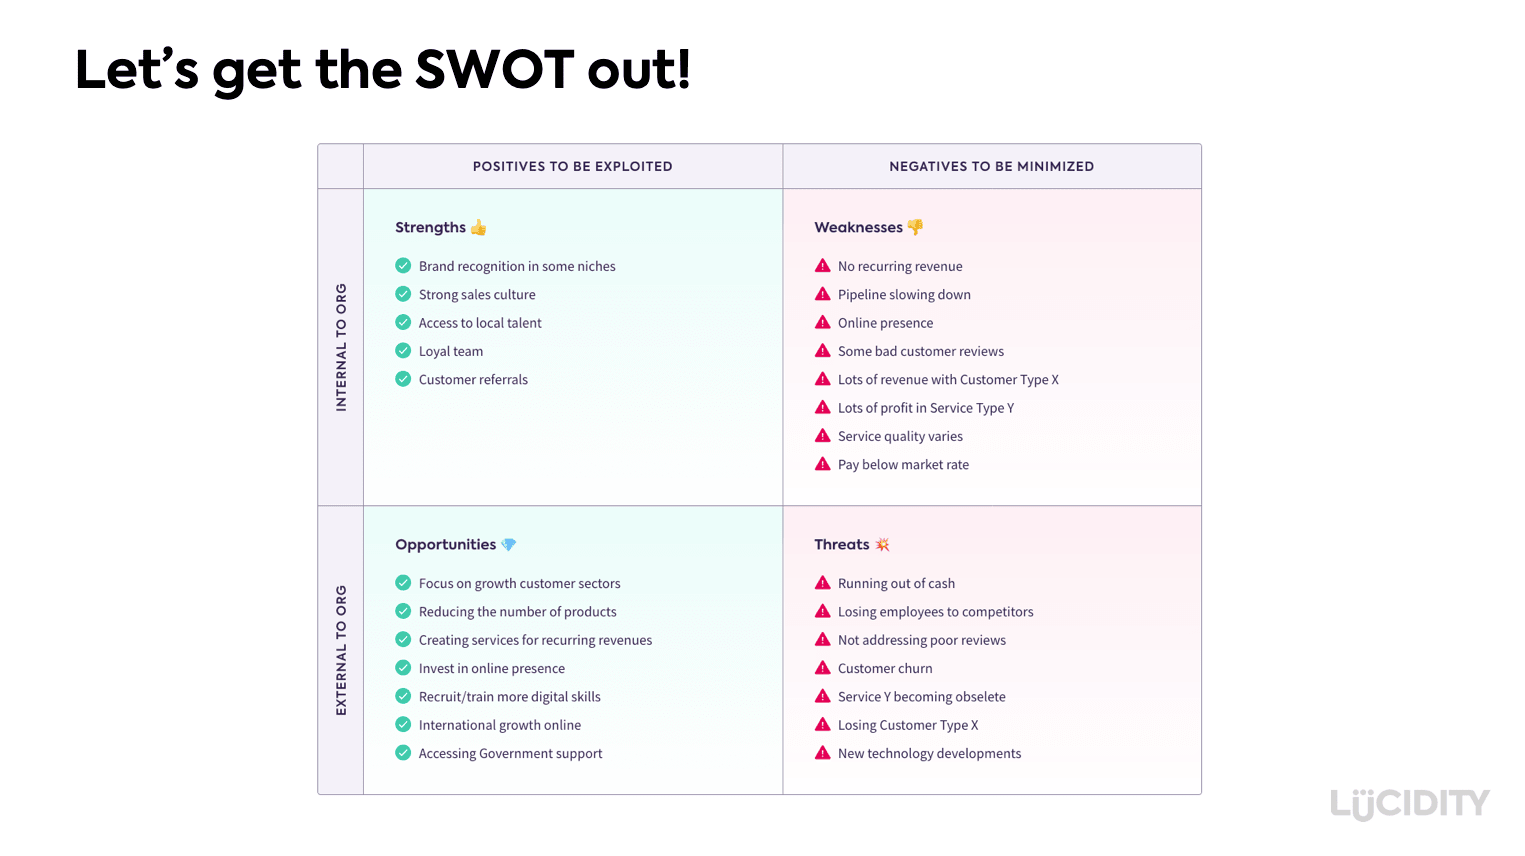 An example of a completed SWOT analysis in Lucidity strategy software